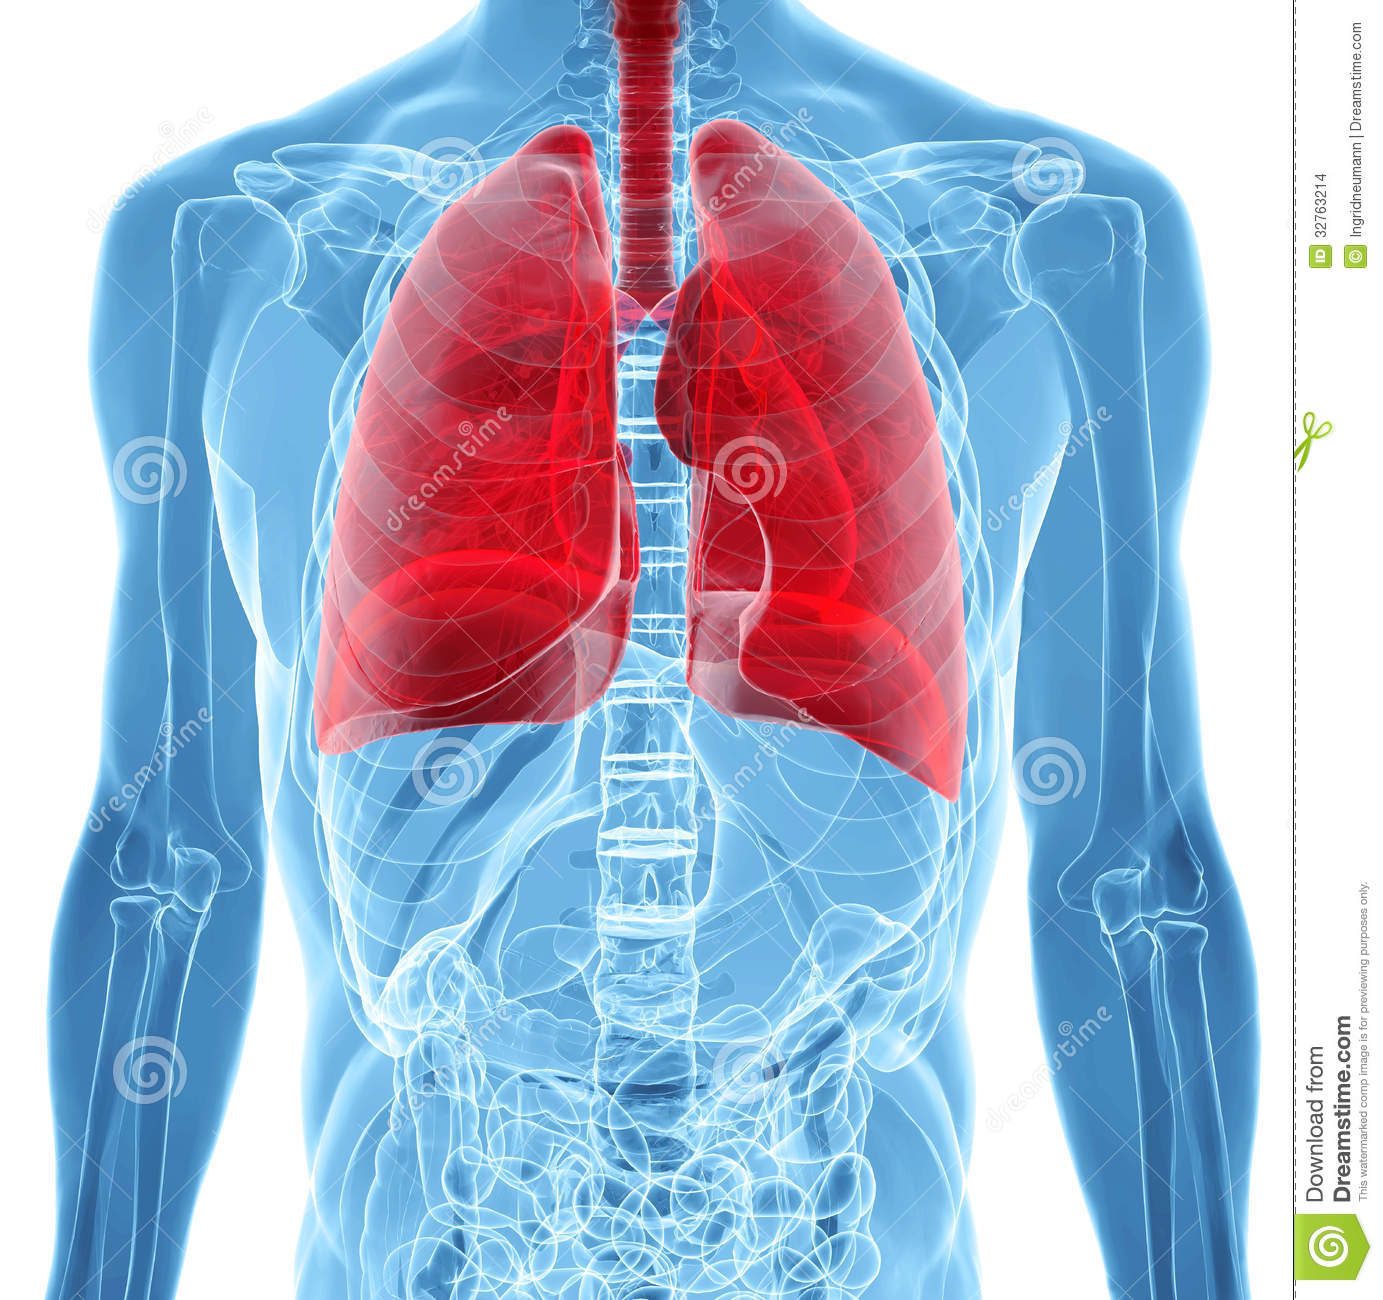 Anatomy Of Human Lungs In X Ray View Stock Illustration